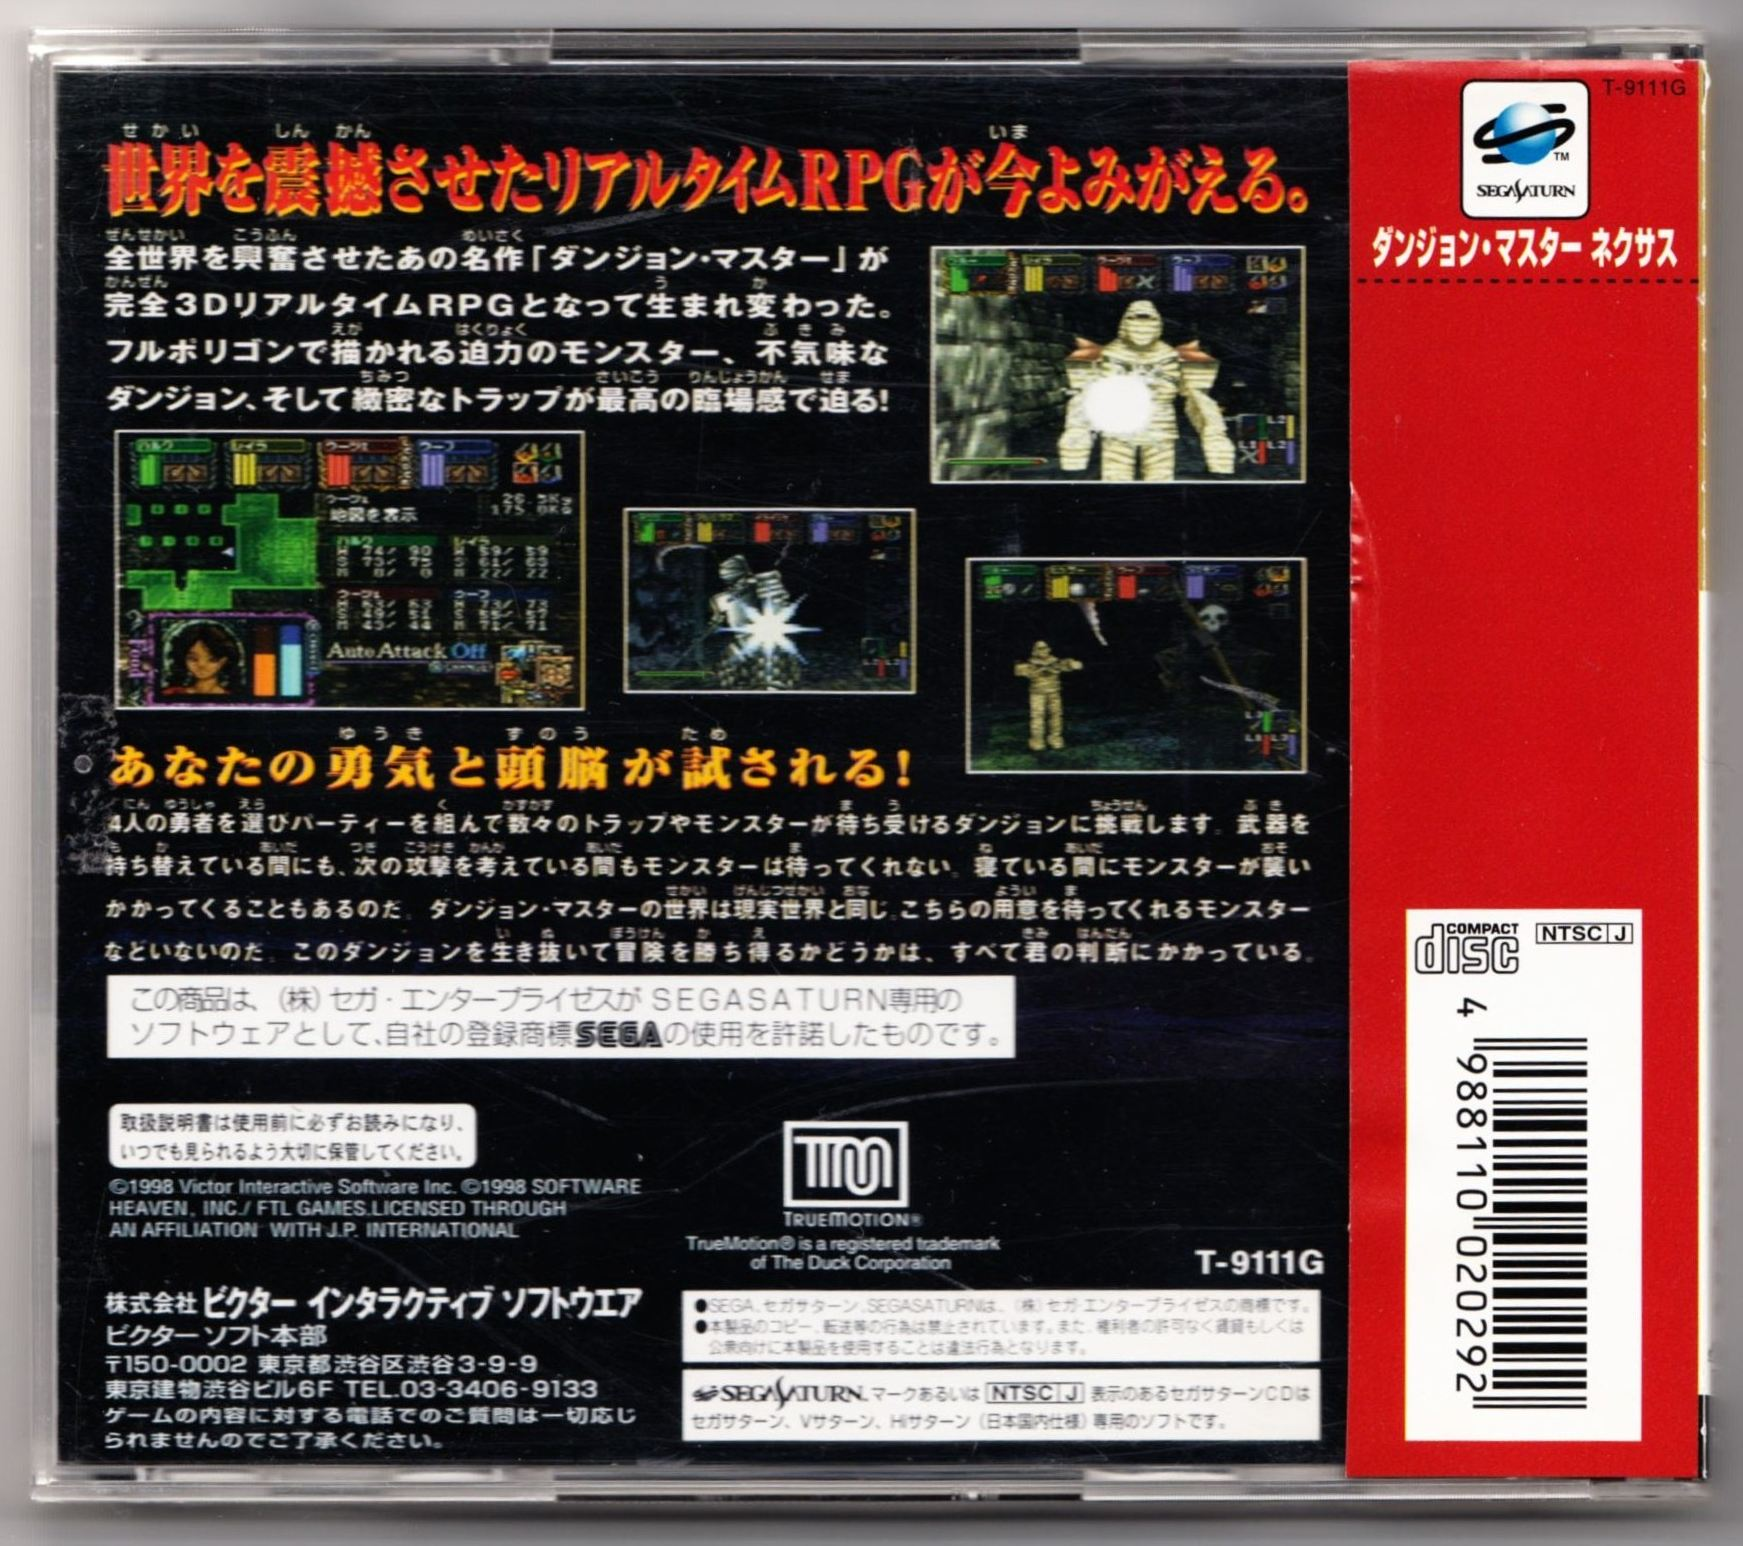 Game - Dungeon Master Nexus - JP - Sega Saturn - Box - Back - Scan